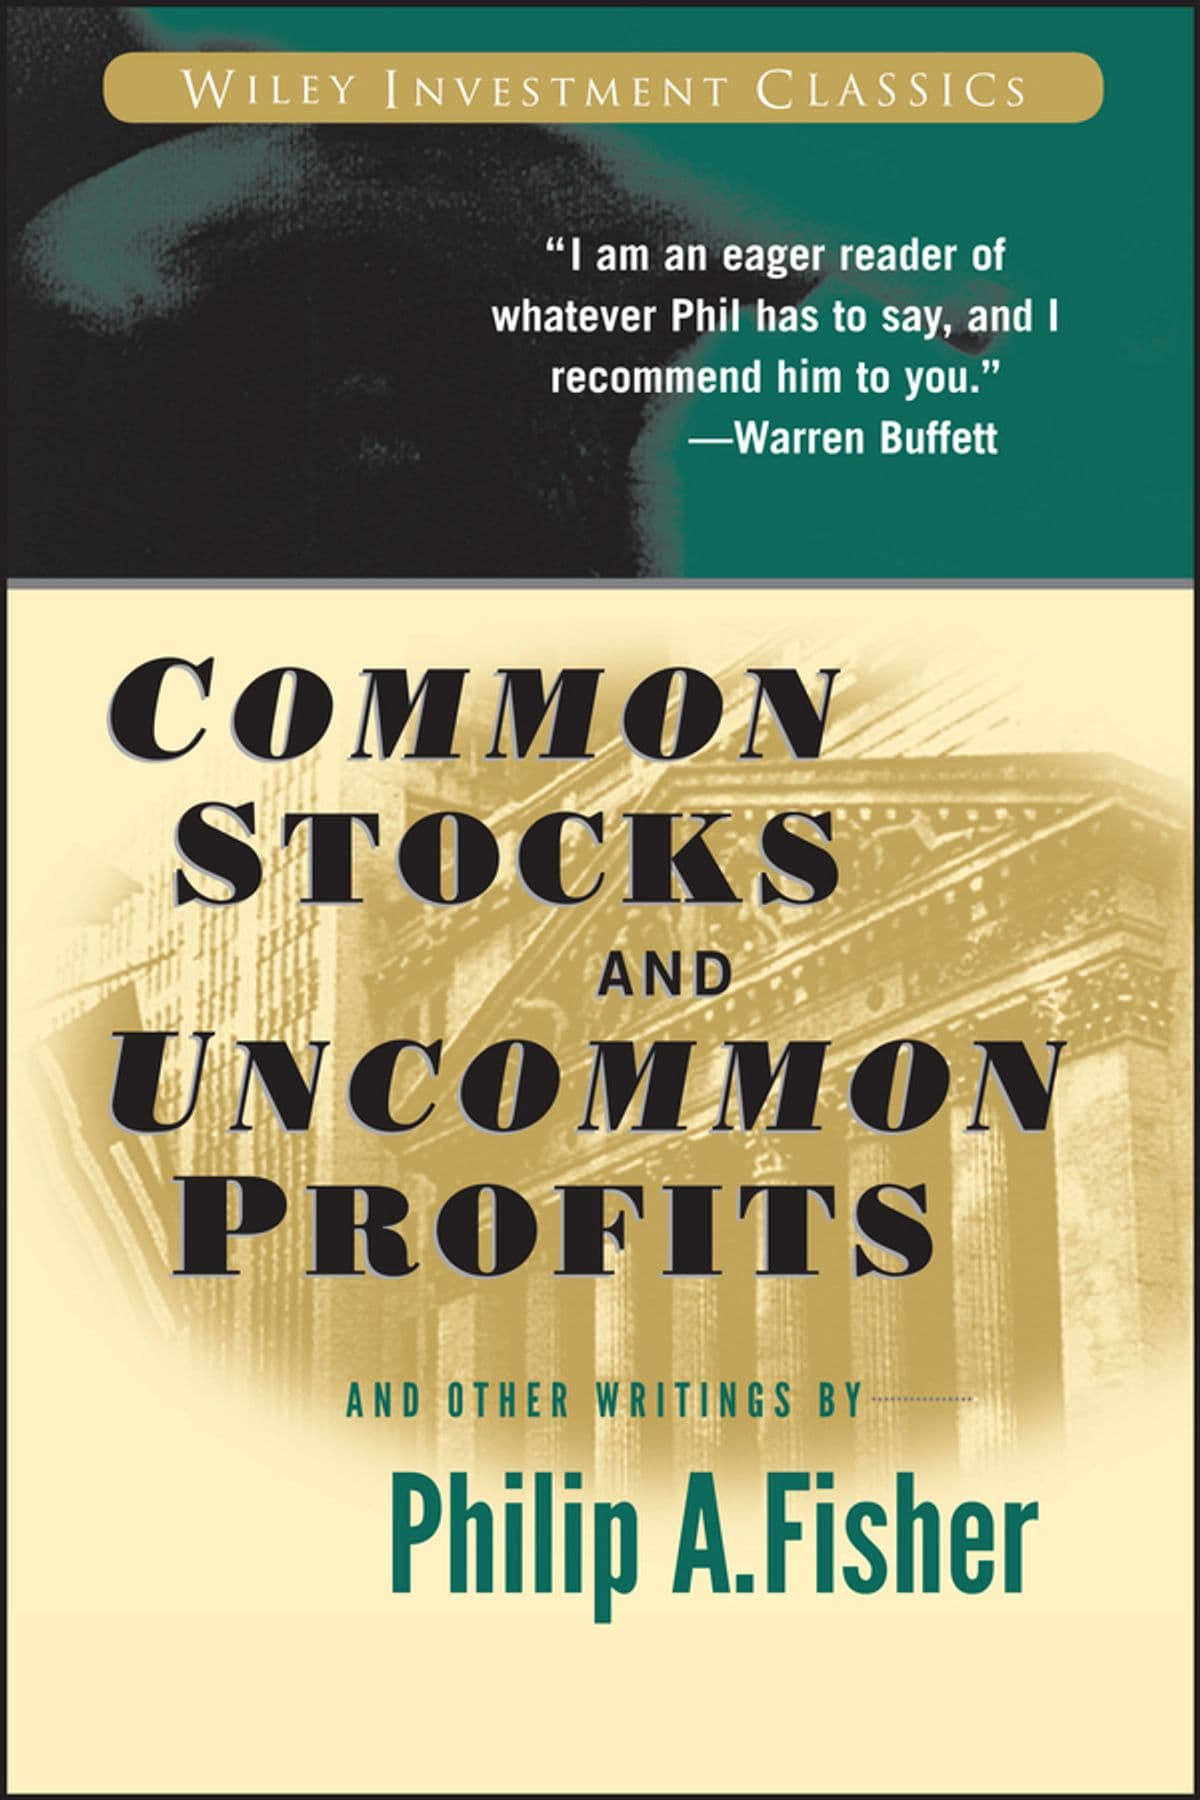 Philip A Fisher - Common Stocks and Uncommon Profits